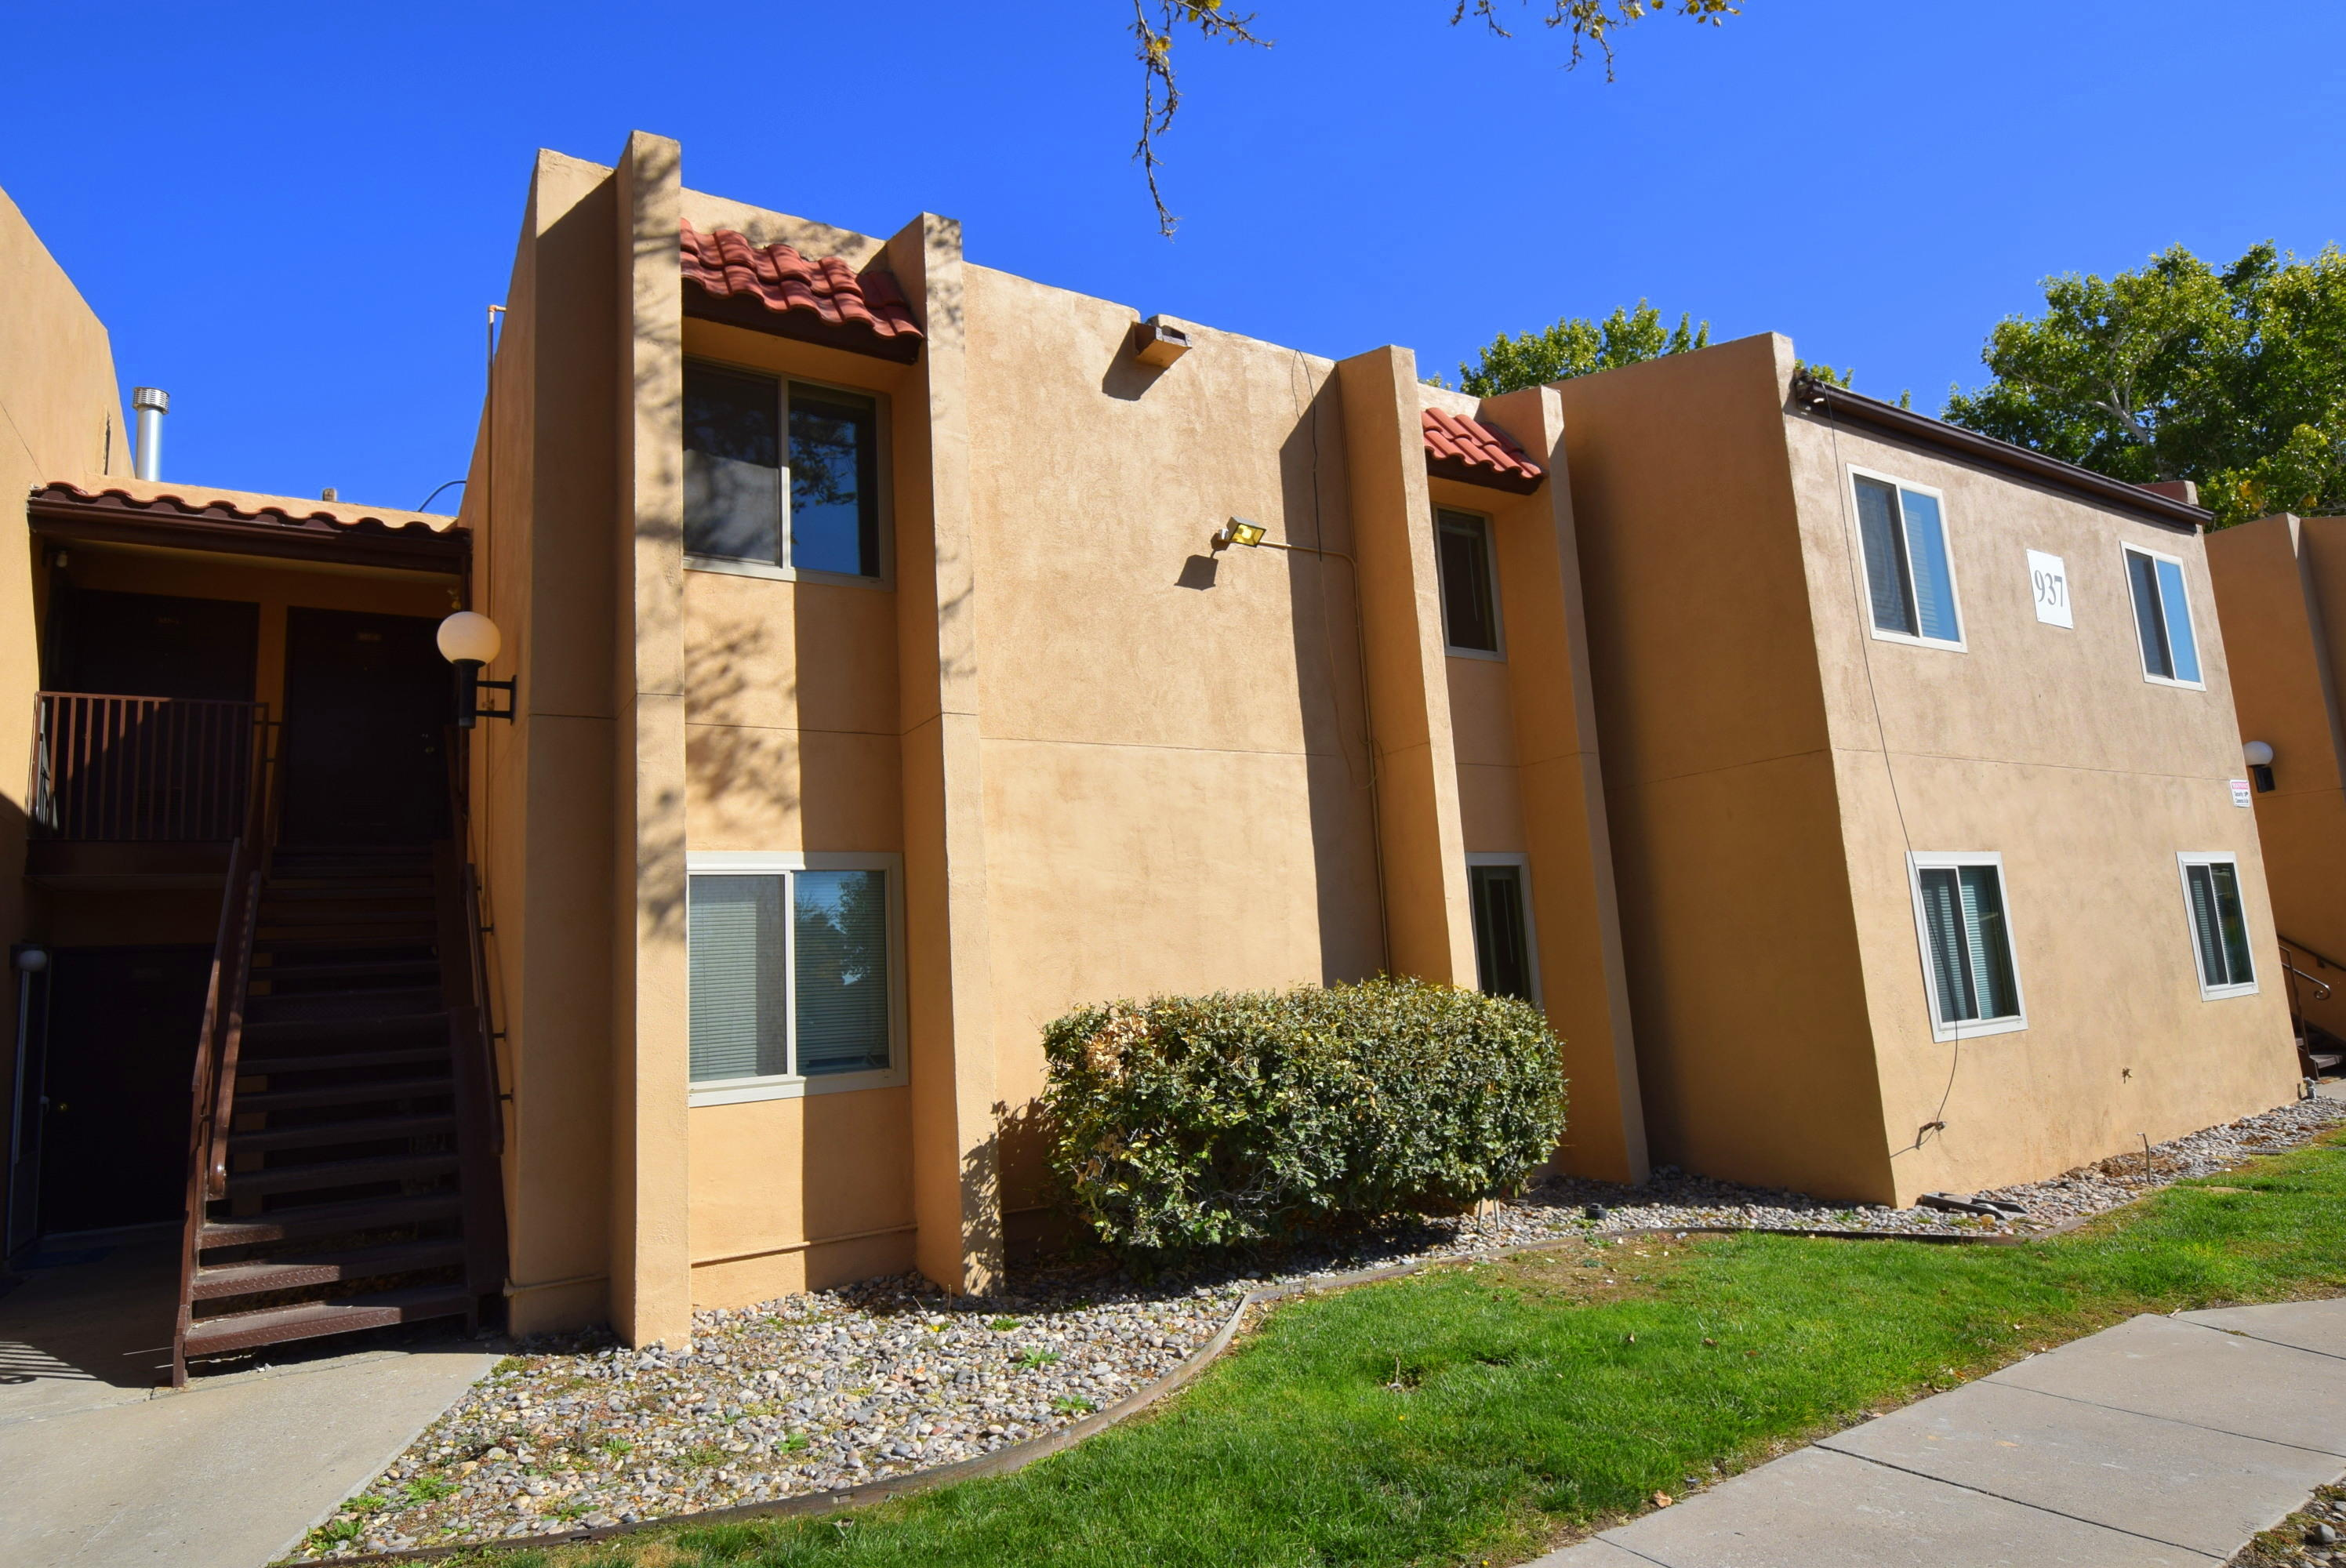 Come see this great condo in the Fairways Condominium Community. Features large living area with cozy kitchen. Hard surface flooring in all major walk ways. 2 large bedrooms with newer carpet! Newer Paint! Newer HVAC! Private balcony! On site community pool and BBQ facilities perfect for family fun. Great location! Close proximity to shopping, dining and entertainment. Priced to sell!! Don't miss this true gem. Call a Realtor today to schedule a private showing.